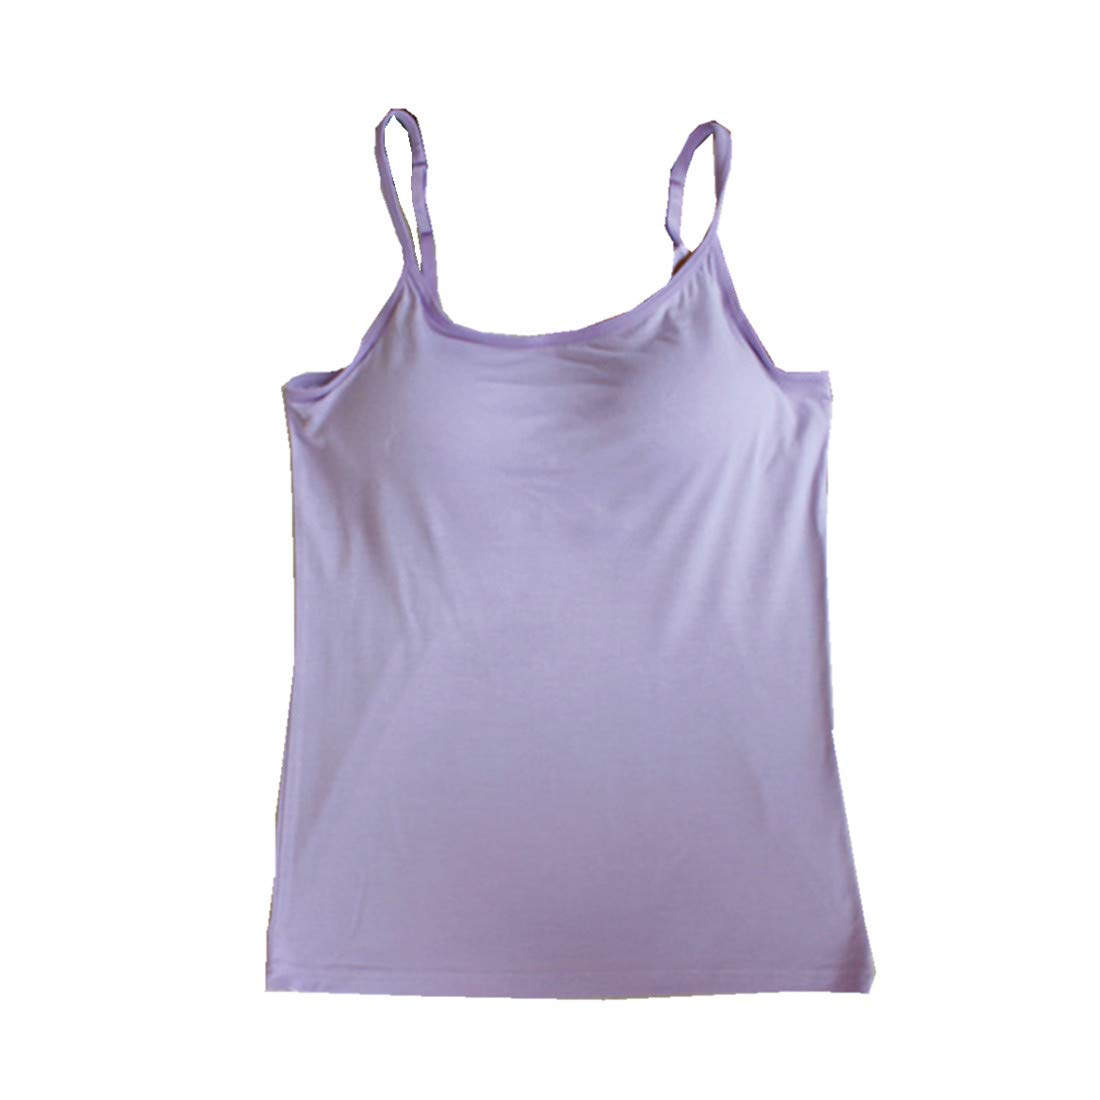 BIFINI Womens Adjustable Padded Bra Camisole Top Sleeveless T-Shirt Colors